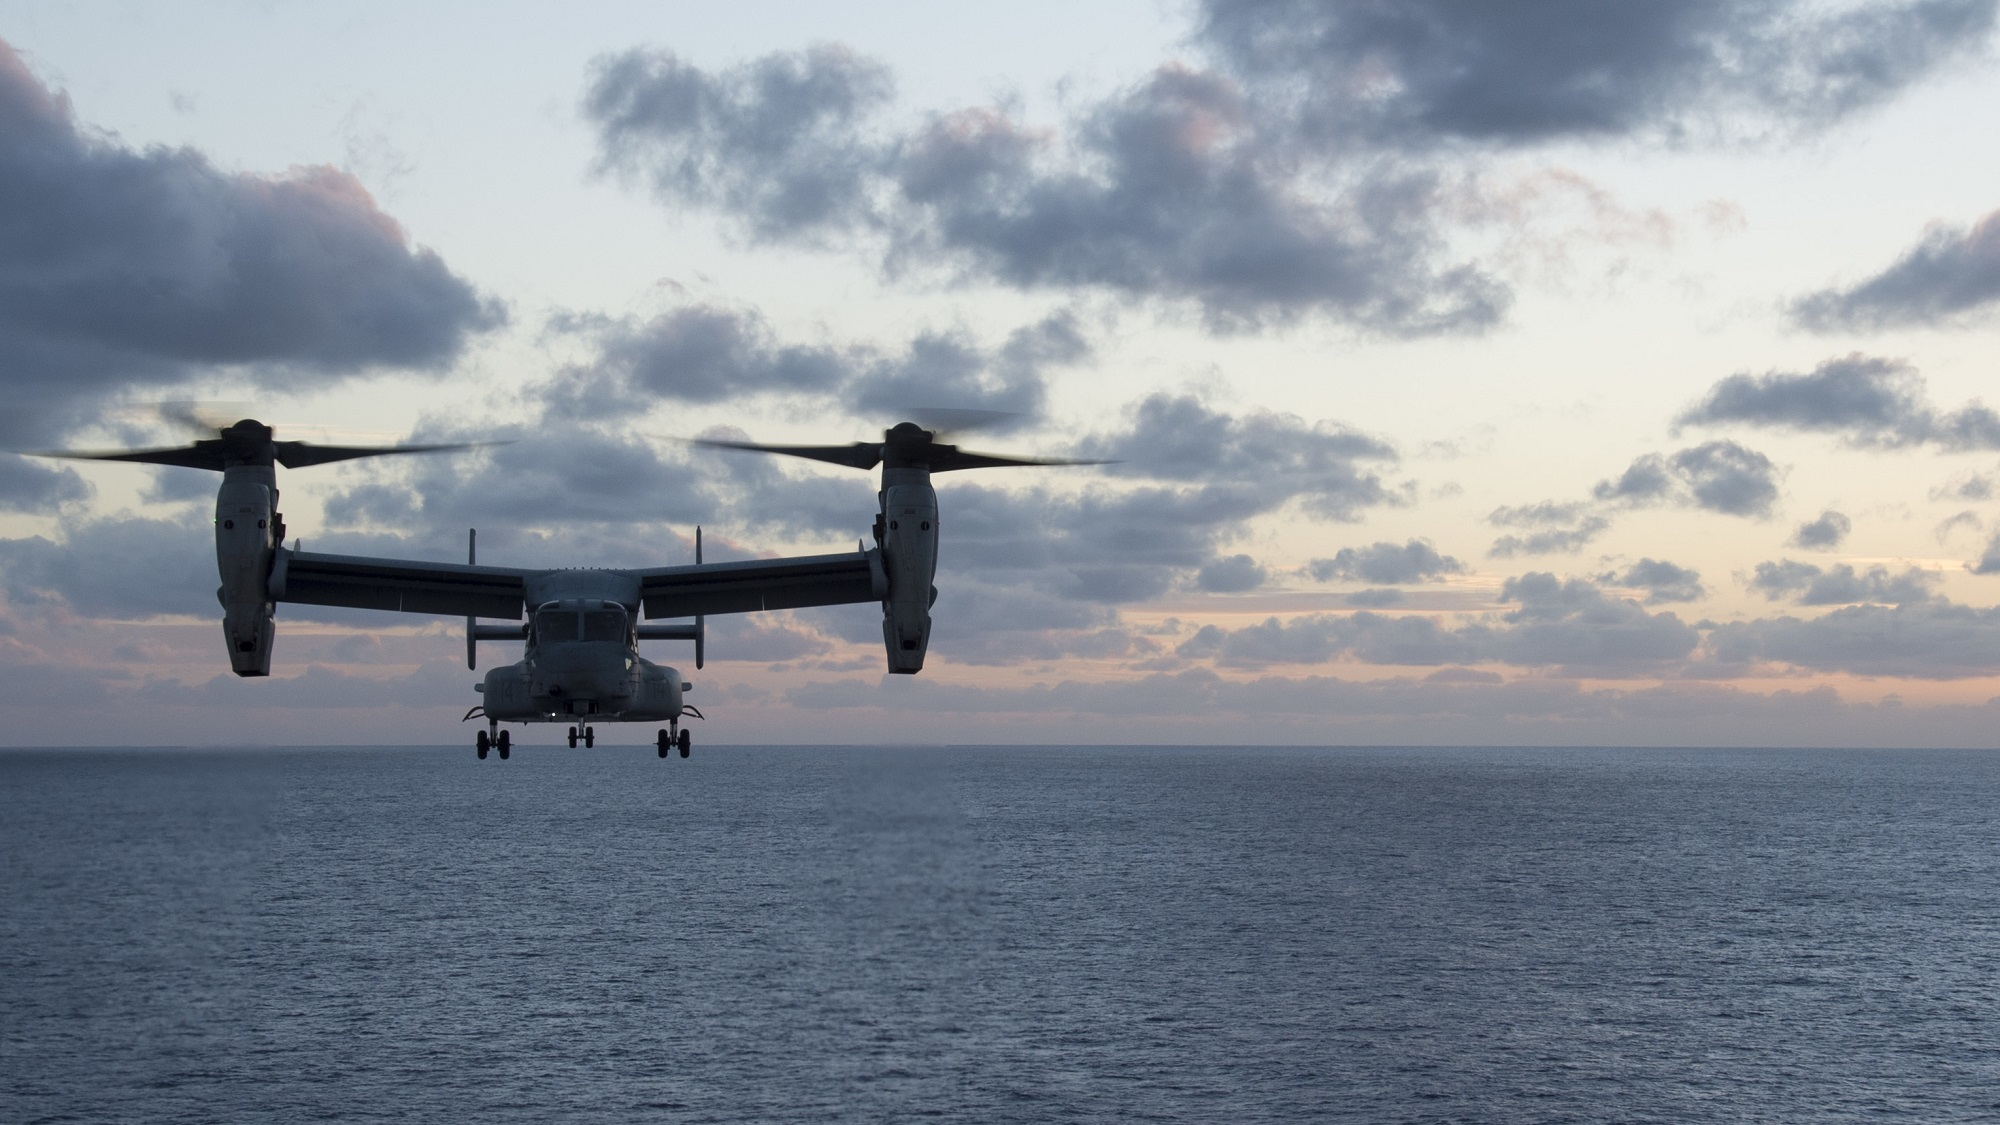 Top Marine orders 24-hour pause in flight operations for all aircraft